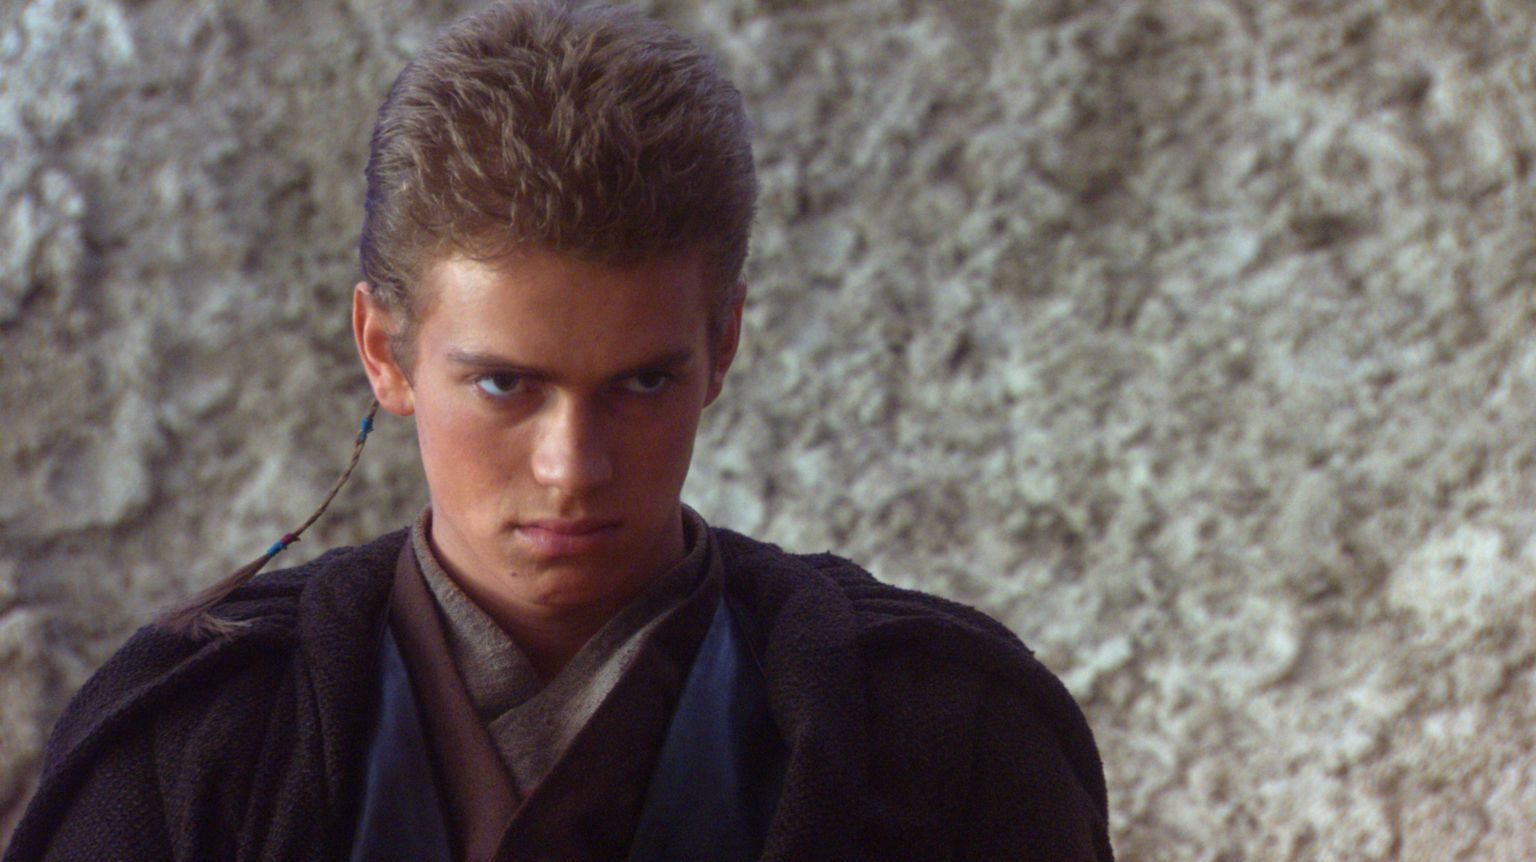 Star Wars Episode Ii Attack Of The Clones 2002 Photo Gallery